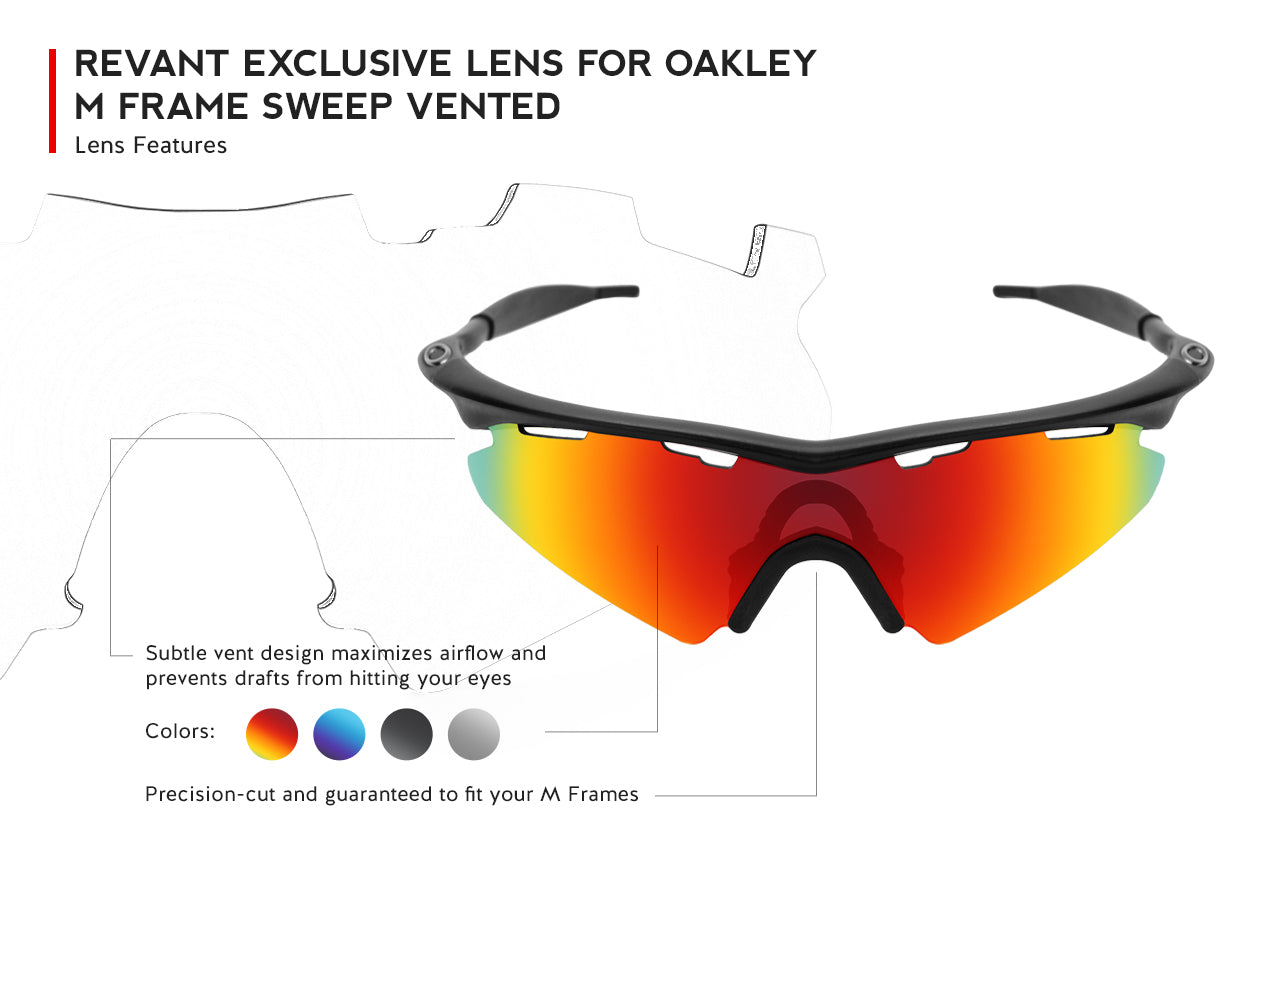 revant exclusive lens for oakley m frame sweep vented